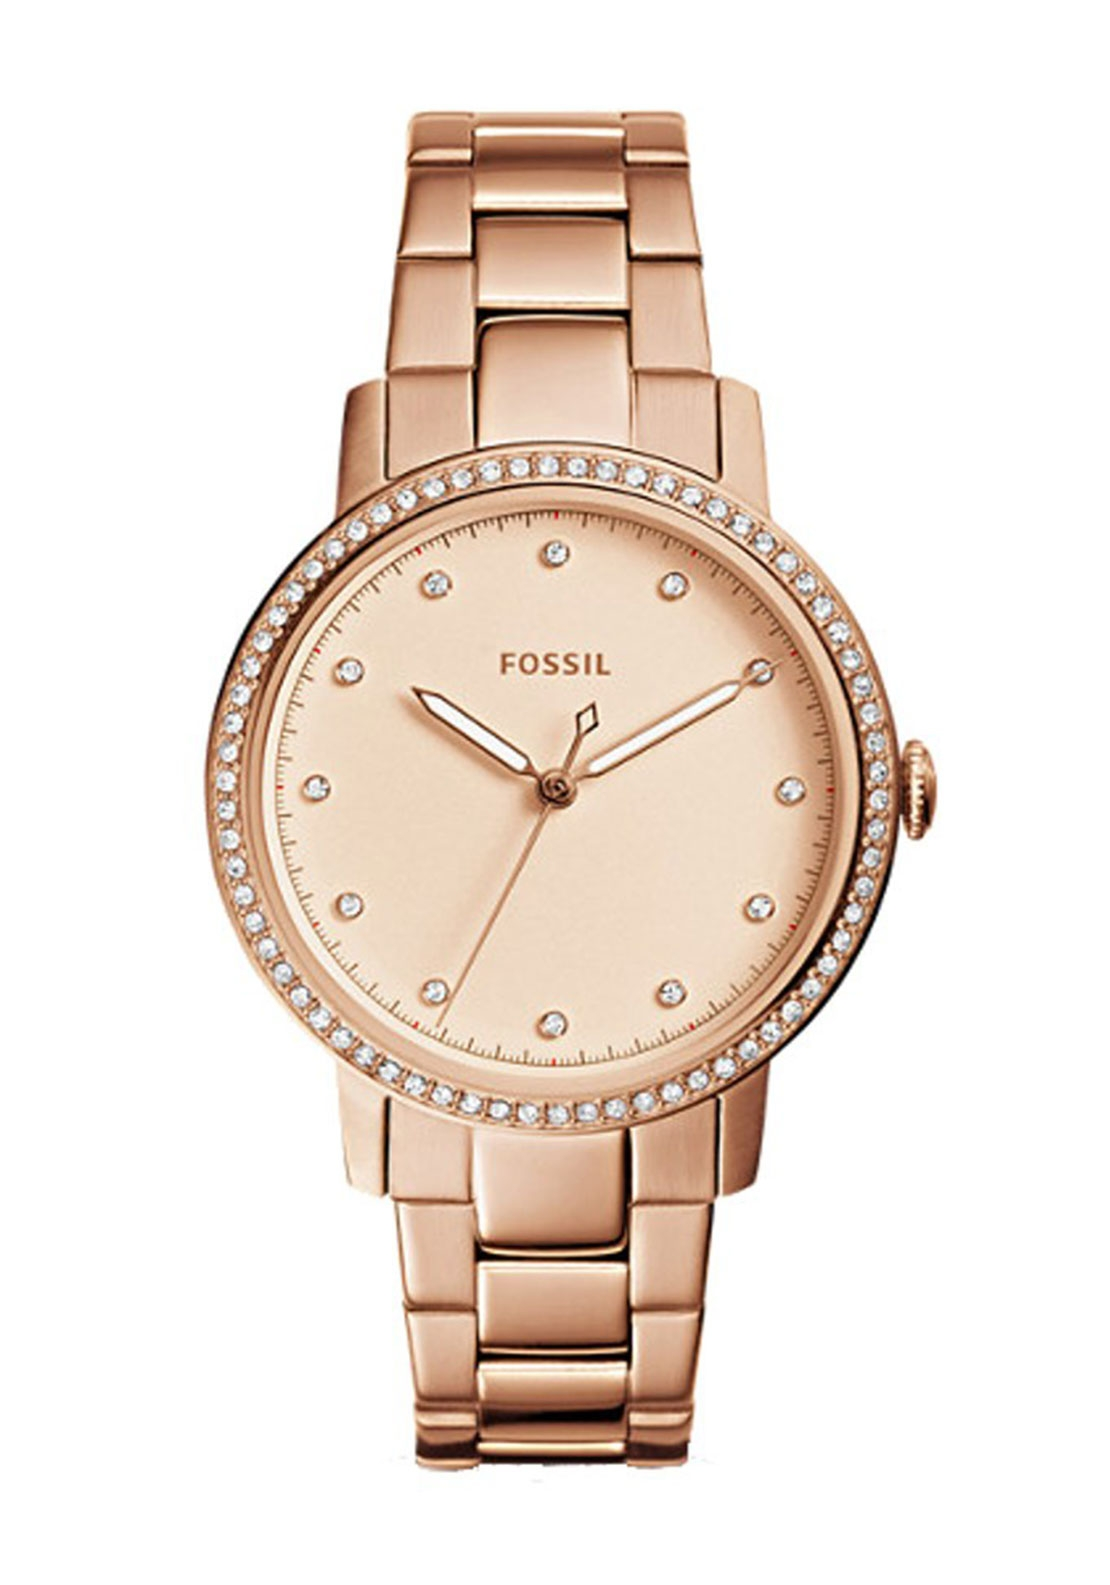 fossil ladies neely watch rose gold mcelhinneys. Black Bedroom Furniture Sets. Home Design Ideas